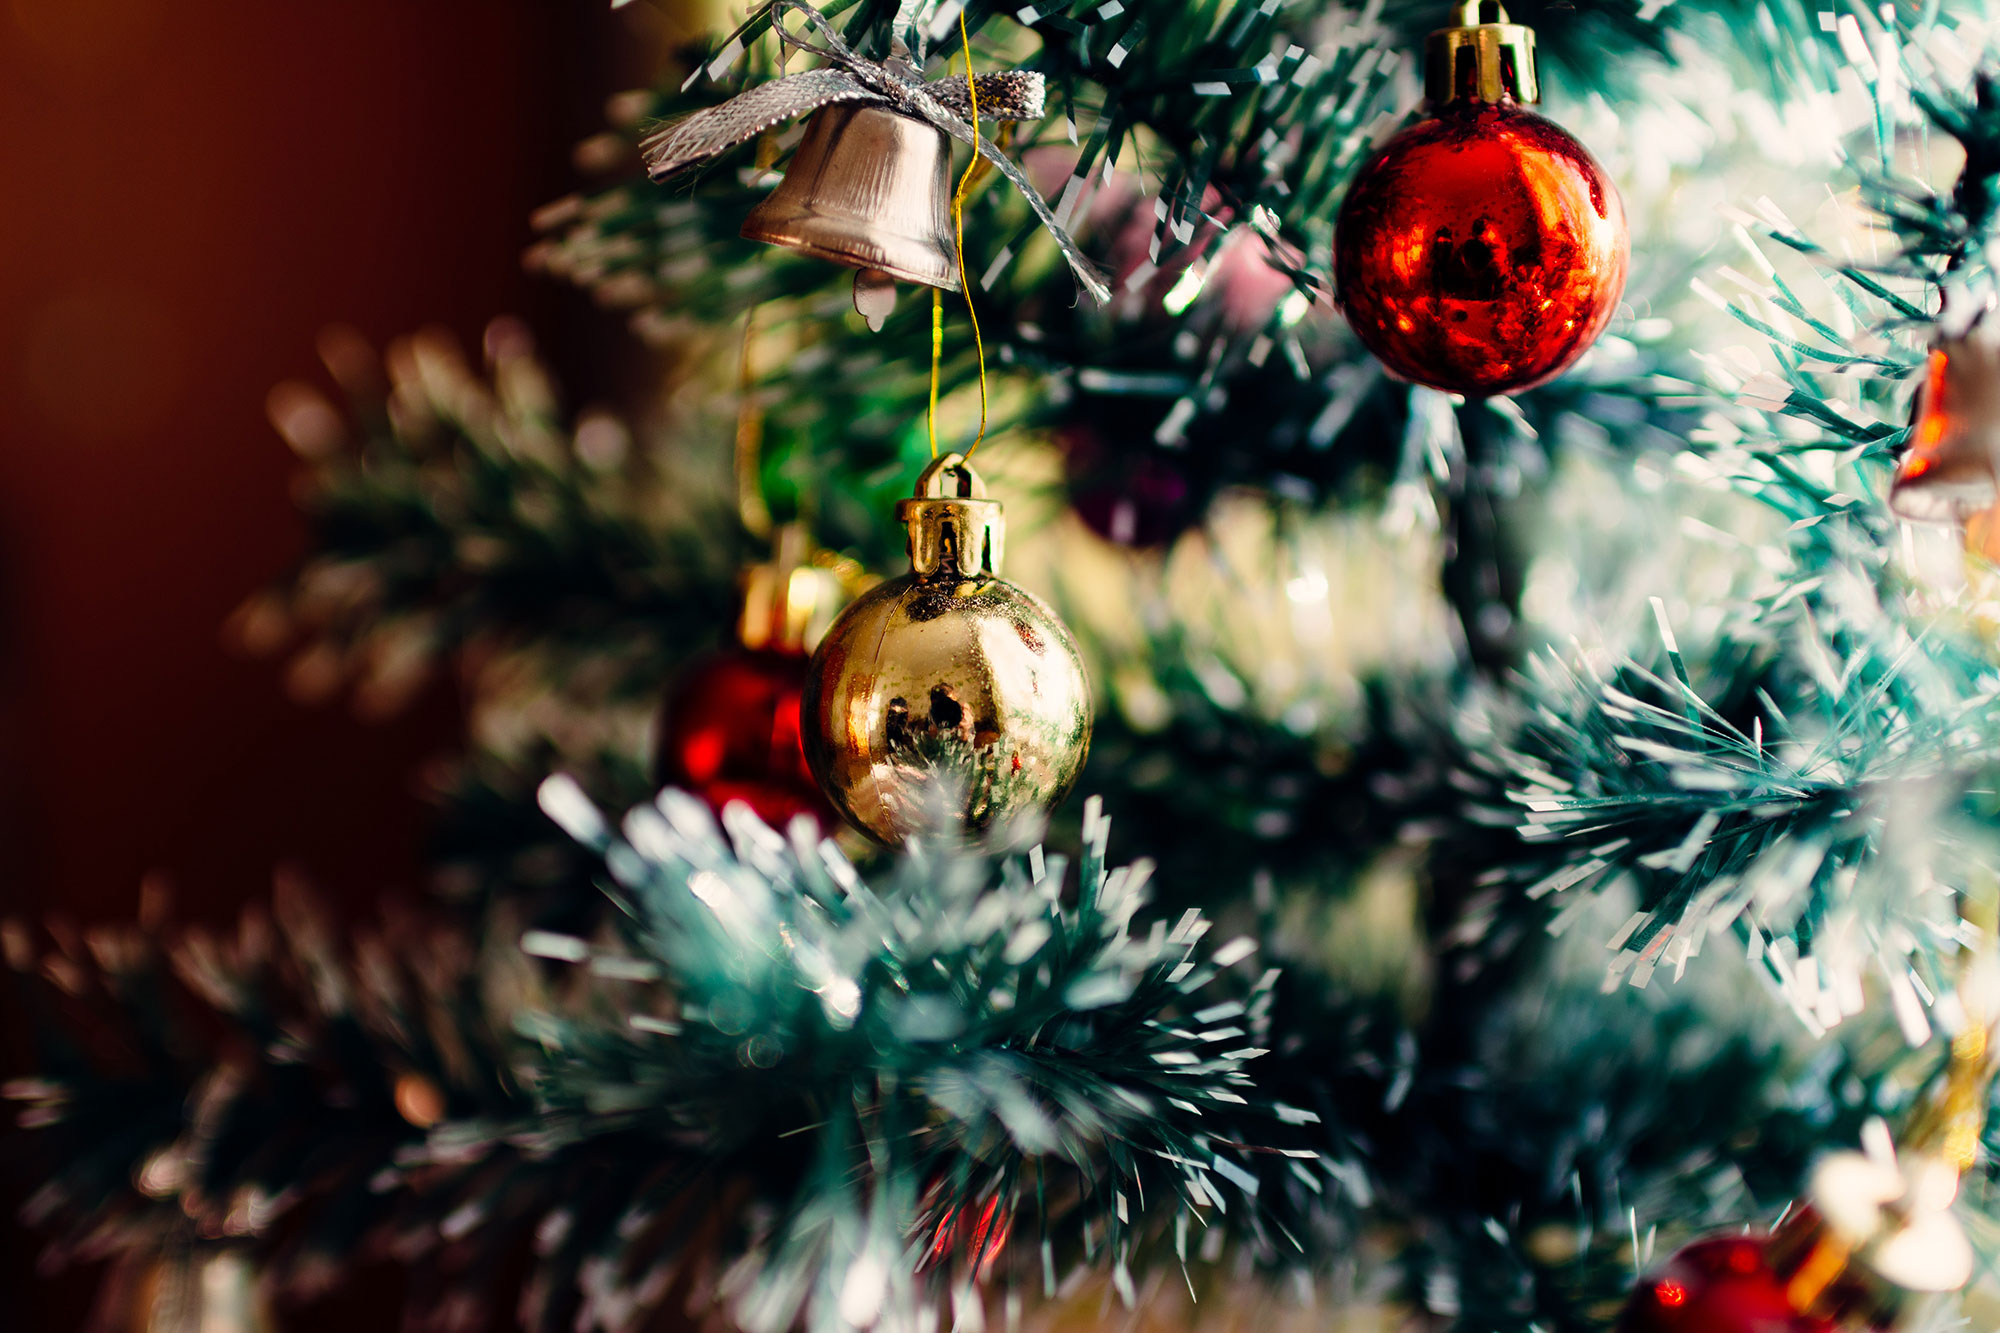 Close up of ornaments on Christmas tree